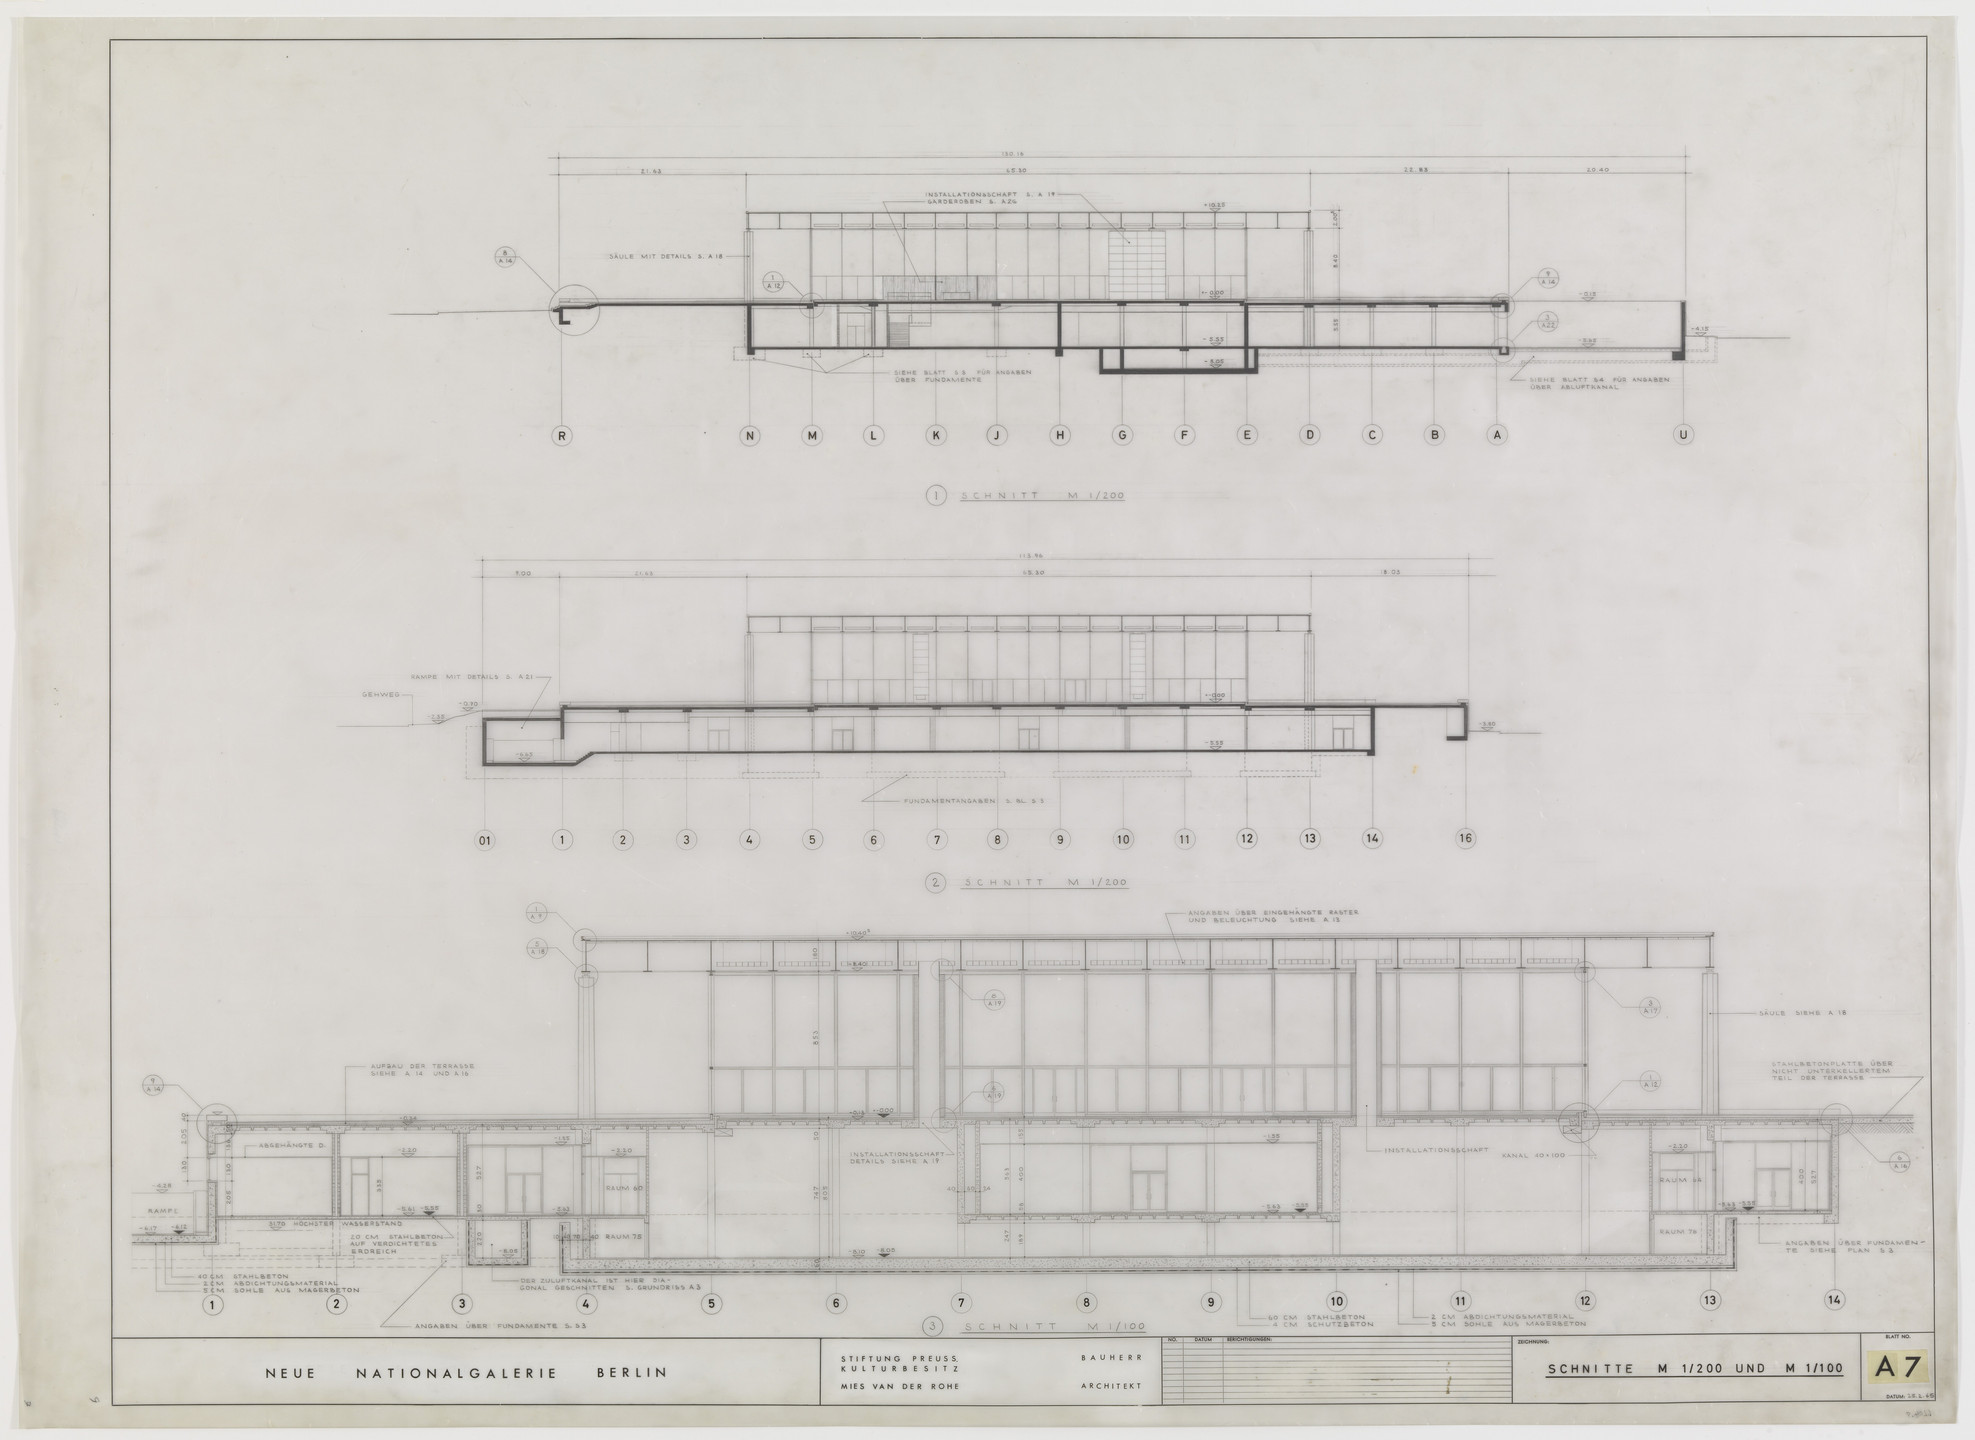 Ludwig Mies van der Rohe. New National Gallery, Berlin, Germany (Sections). 1967